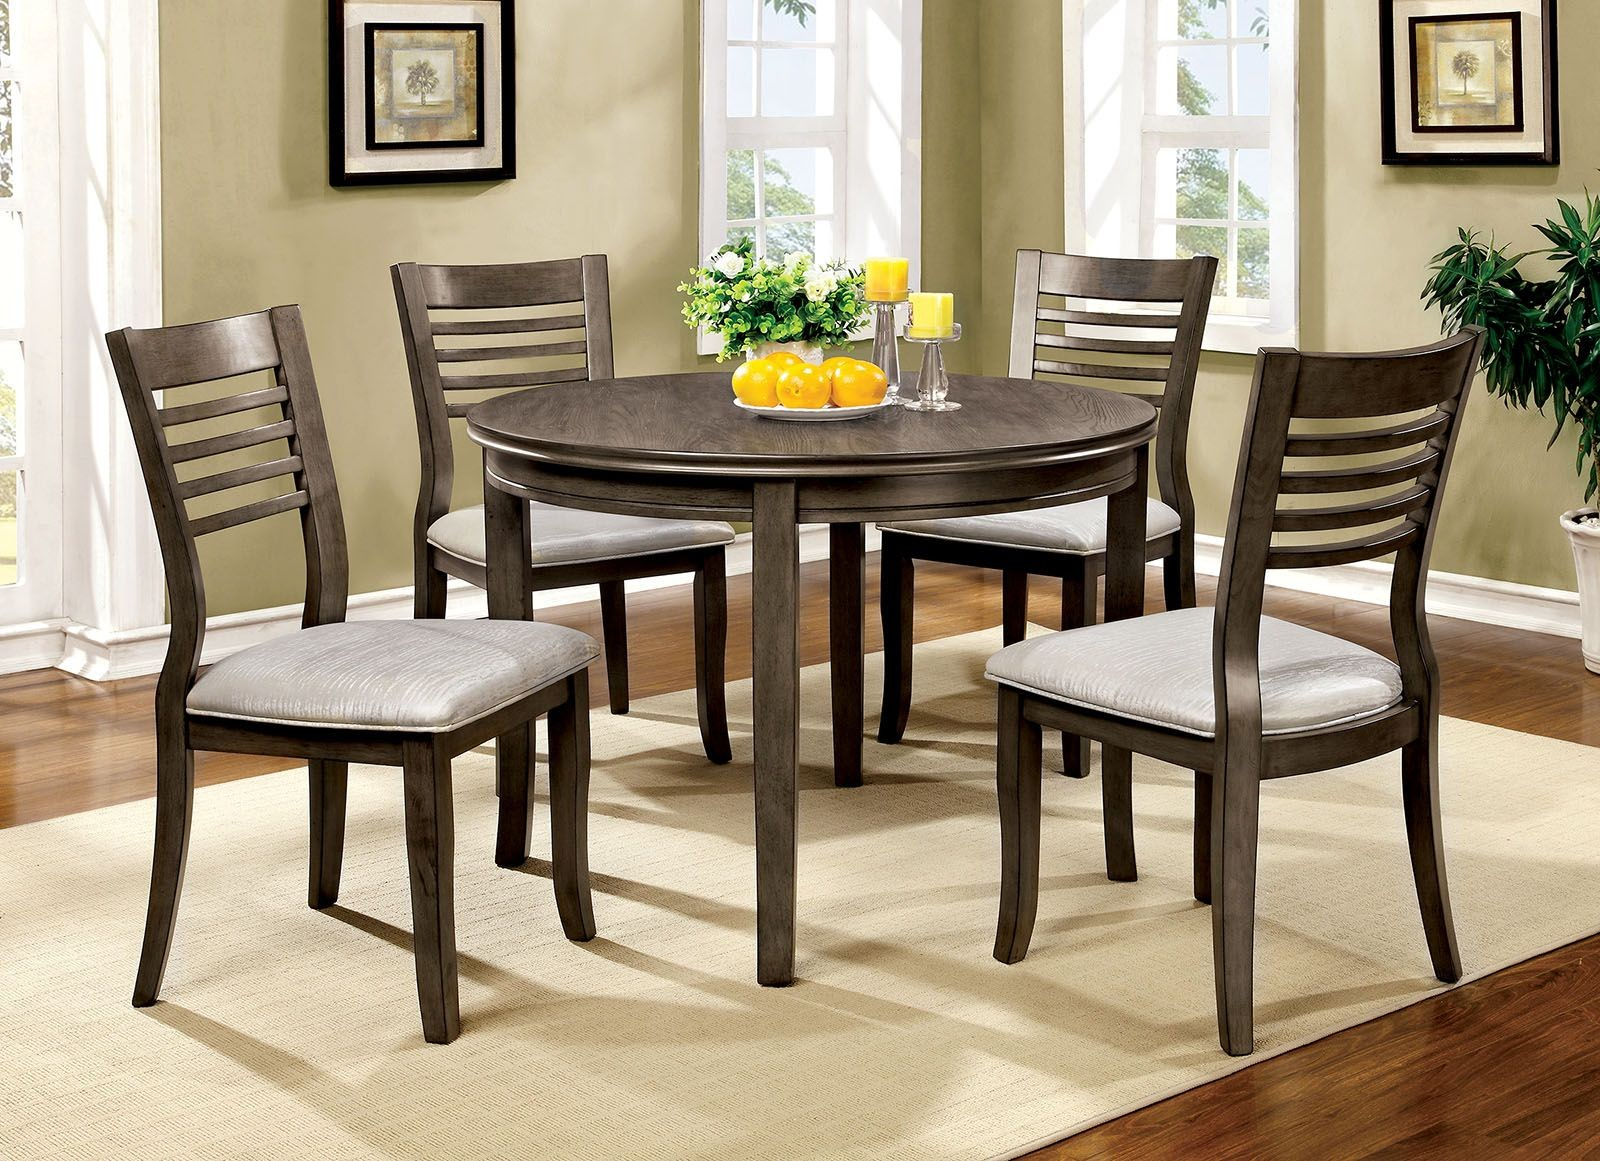 "Dwight III 42"" Round Dining Room Set from Furniture of ..."